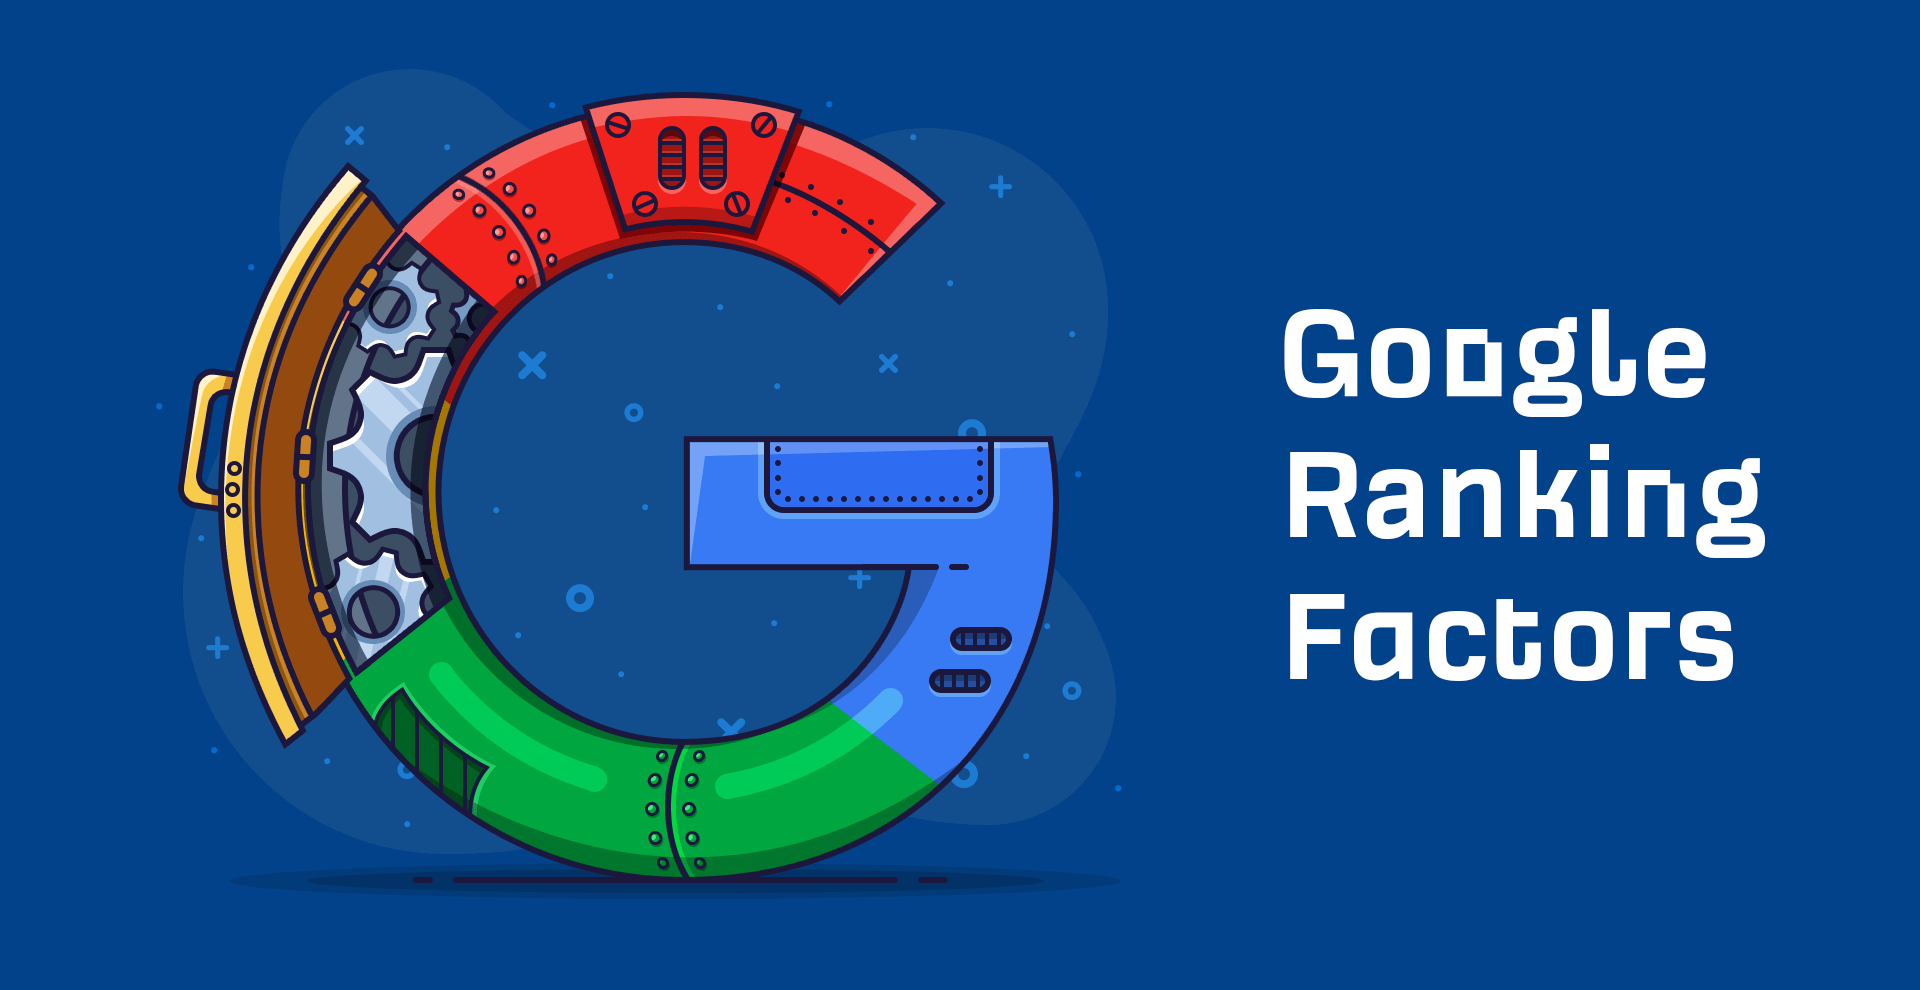 Google-Ranking-Factors-Venkatesh-Soubbarayalu